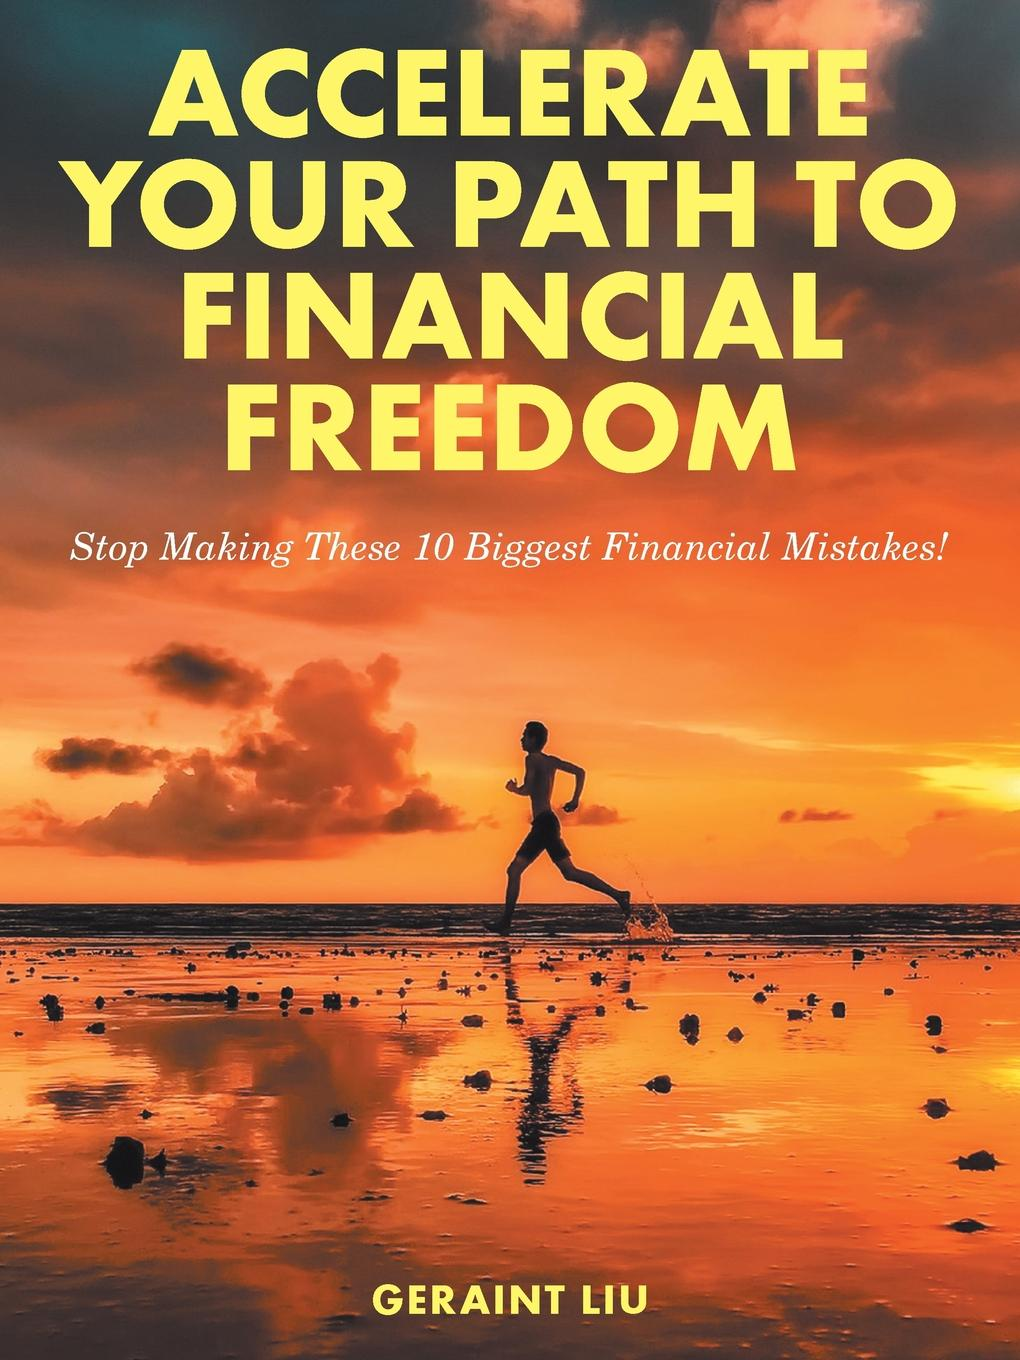 Geraint Liu Accelerate Your Path to Financial Freedom. Stop Making These 10 Biggest Financial Mistakes. trish power super freedom create a worry free financial future in 6 steps